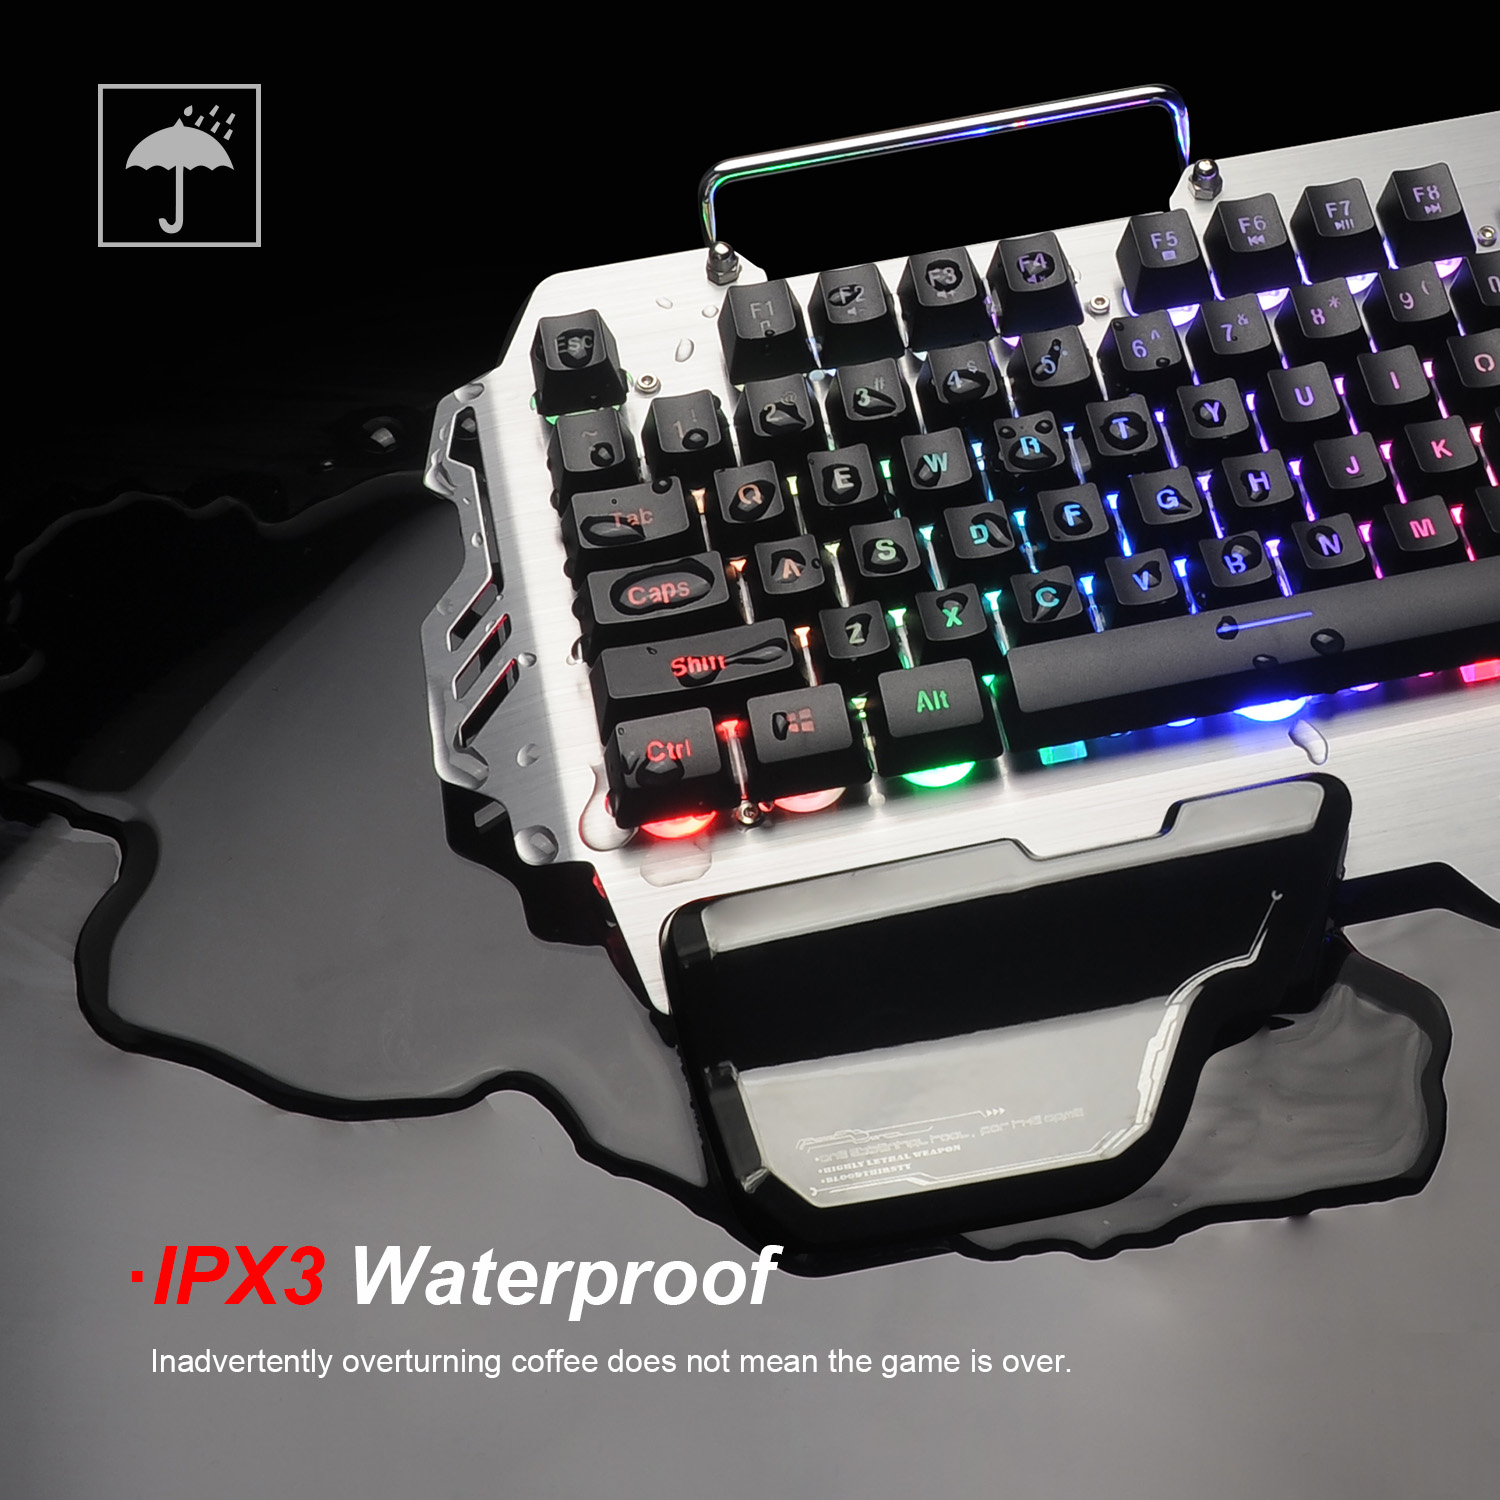 RedThunder K900 RGB Gaming Keyboard Mechanical Similar Russian Spanish French Multilingual Metal Cover for Tablet Desktop